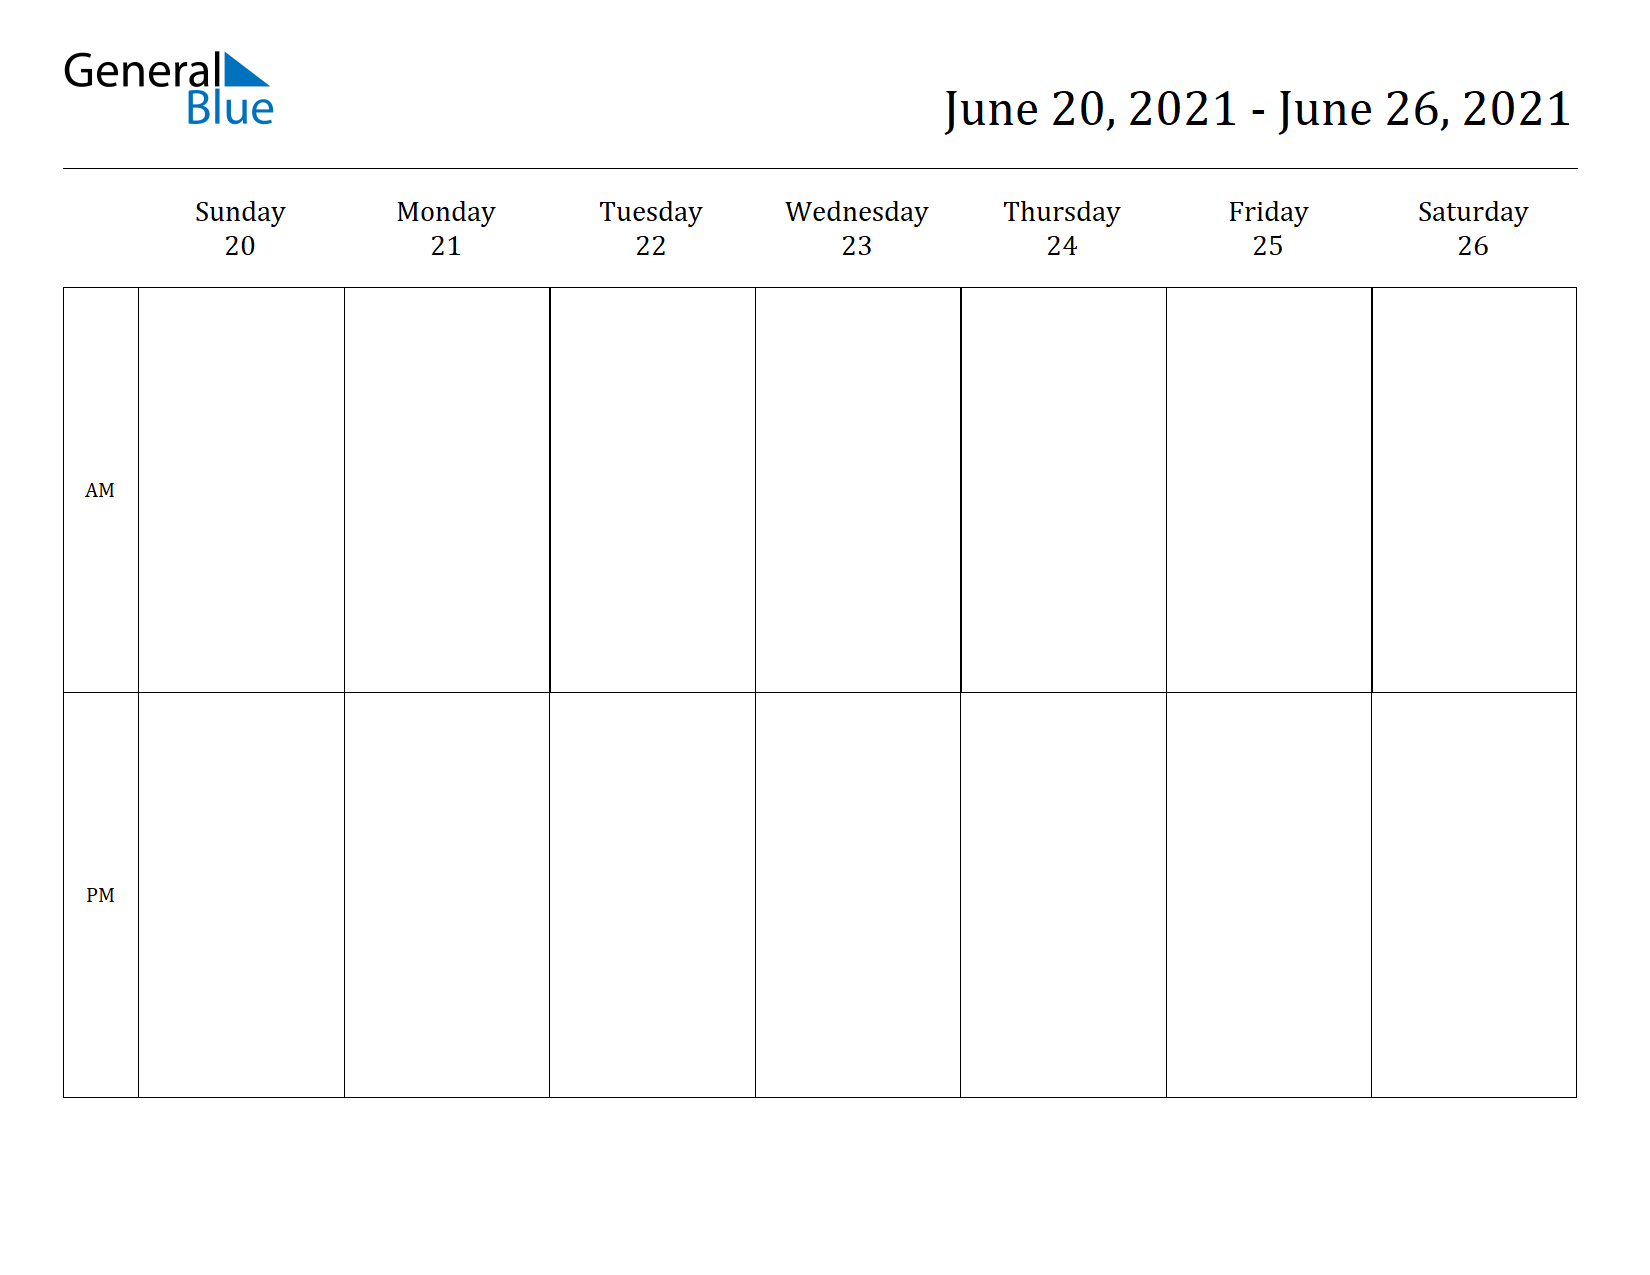 Weekly Calendar for Jun 20, 2021 to Jun 26, 2021